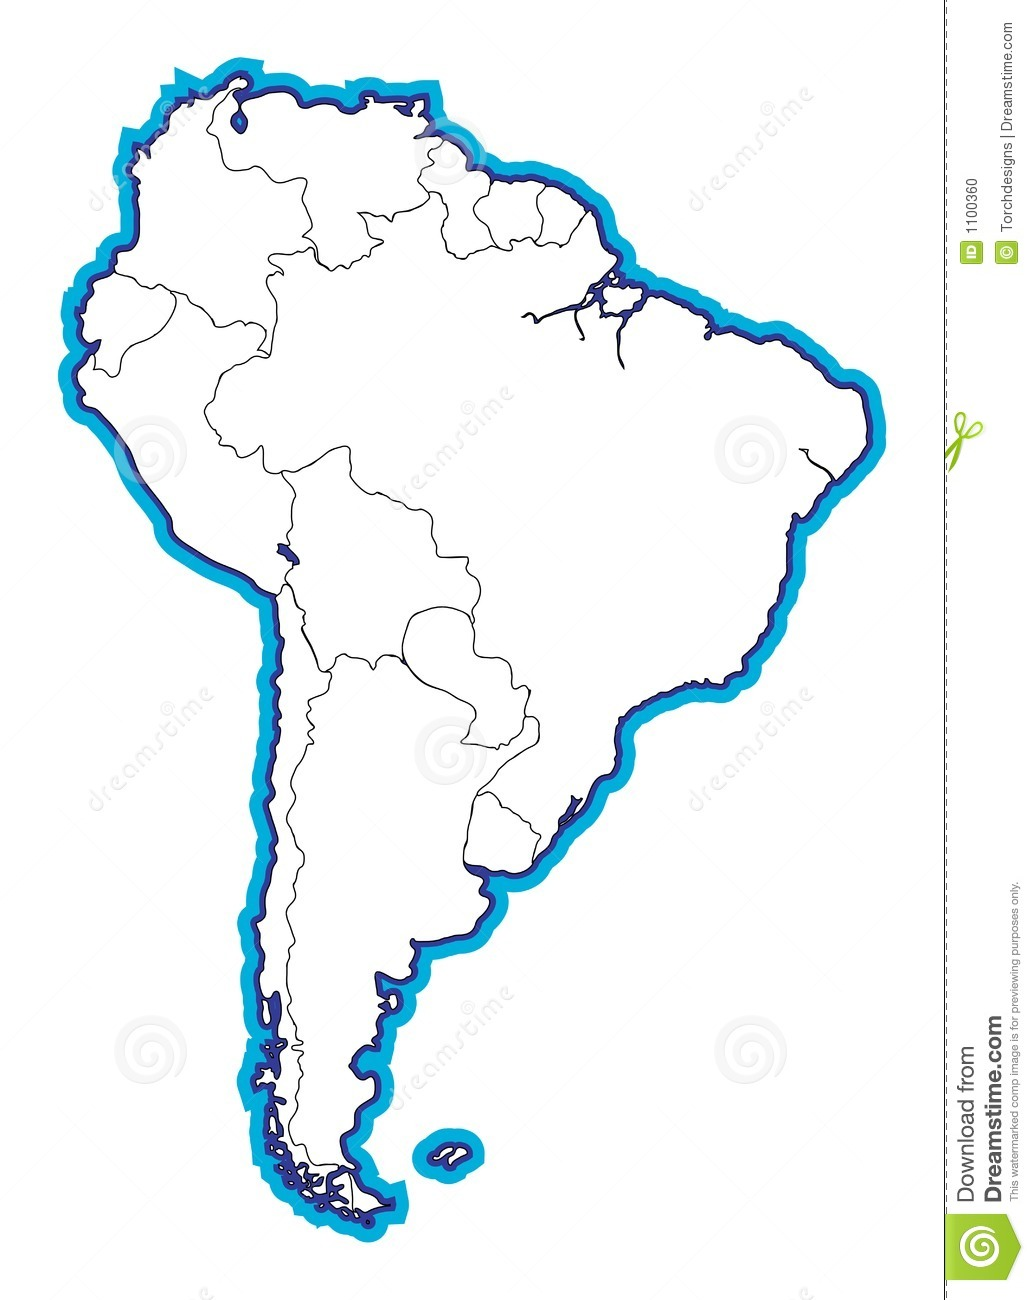 South american map blank stock illustration illustration of south american map blank gumiabroncs Images